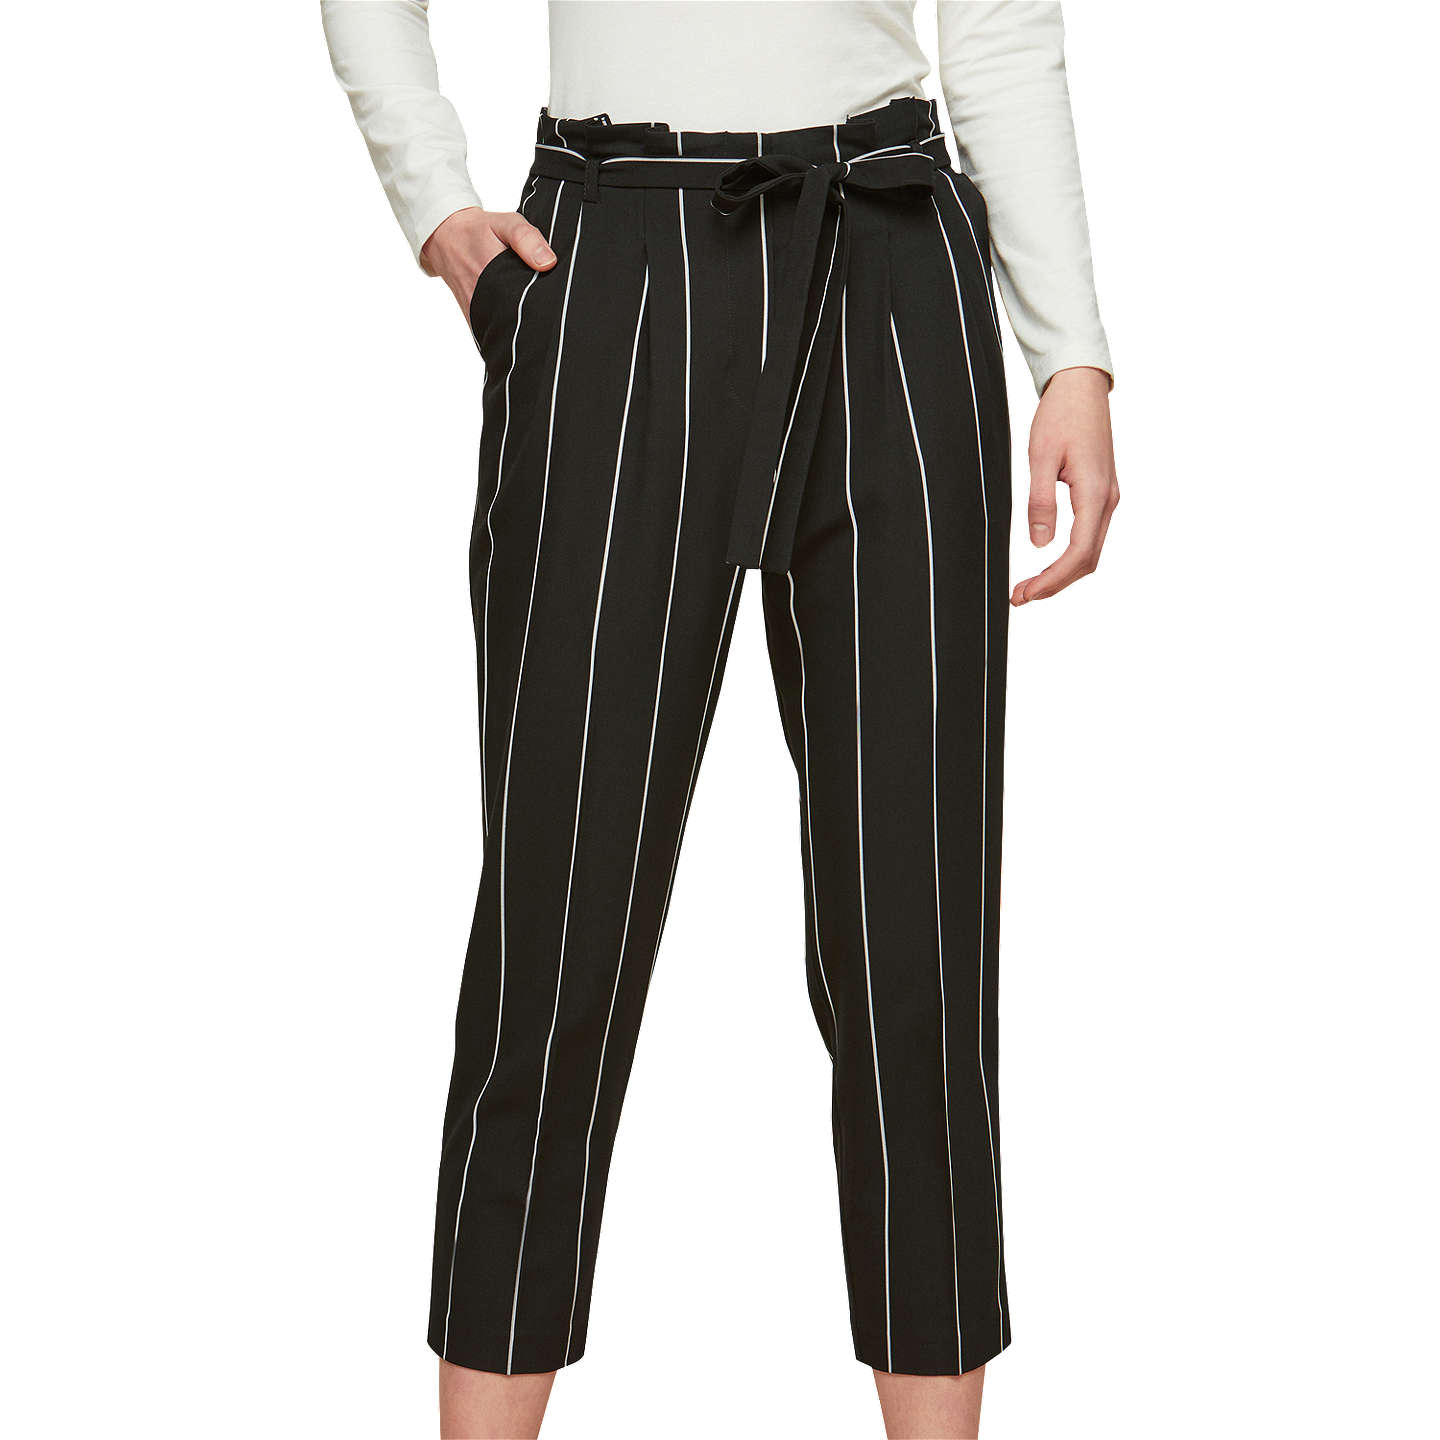 Womens Silver Trousers Miss Selfridge Discount Order Clearance Big Discount Discount Pictures Sale Visa Payment 1lRNP